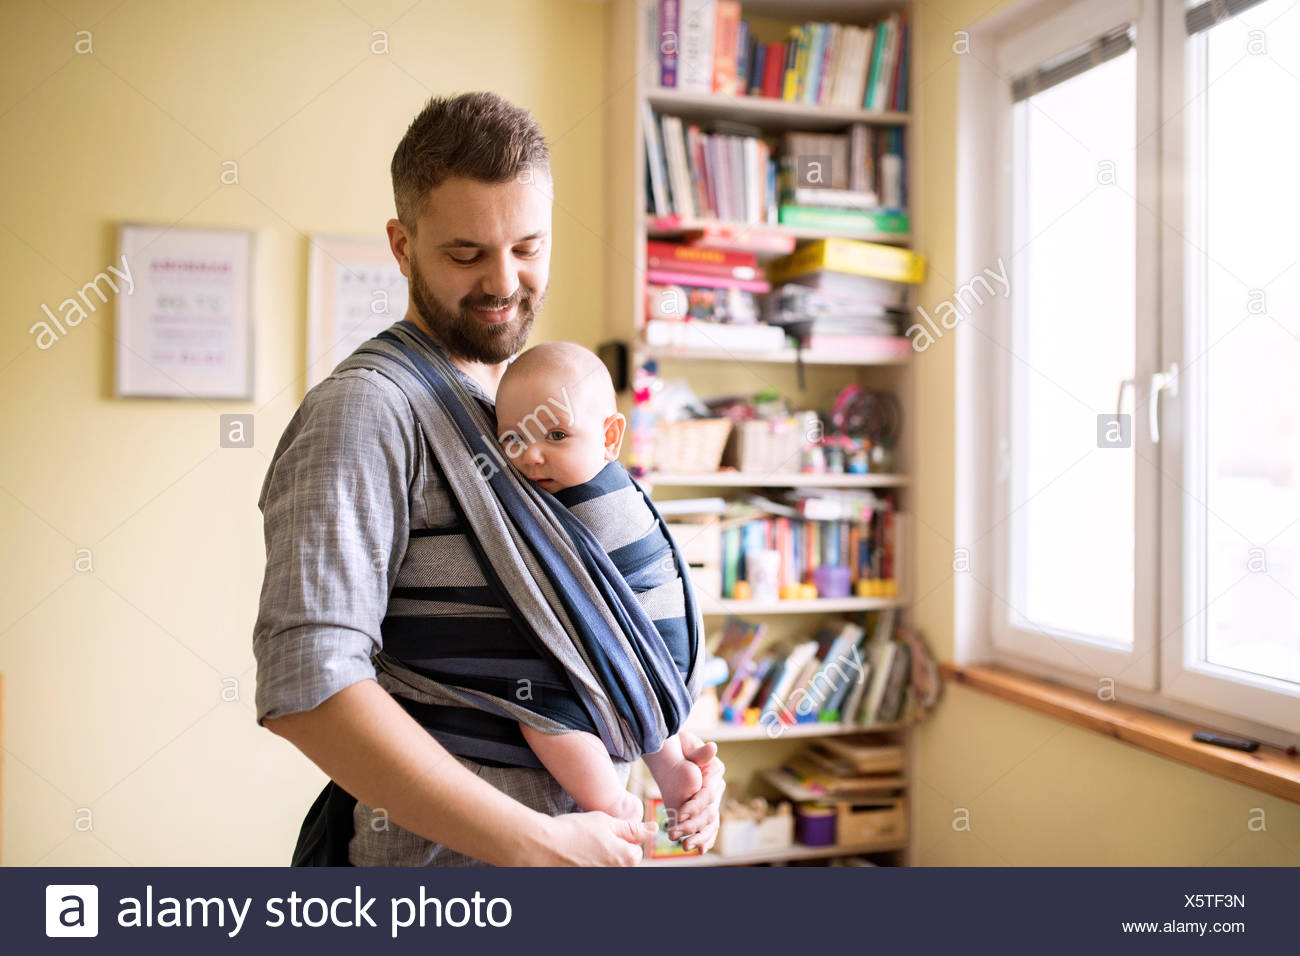 Father with baby son in sling at home - Stock Image